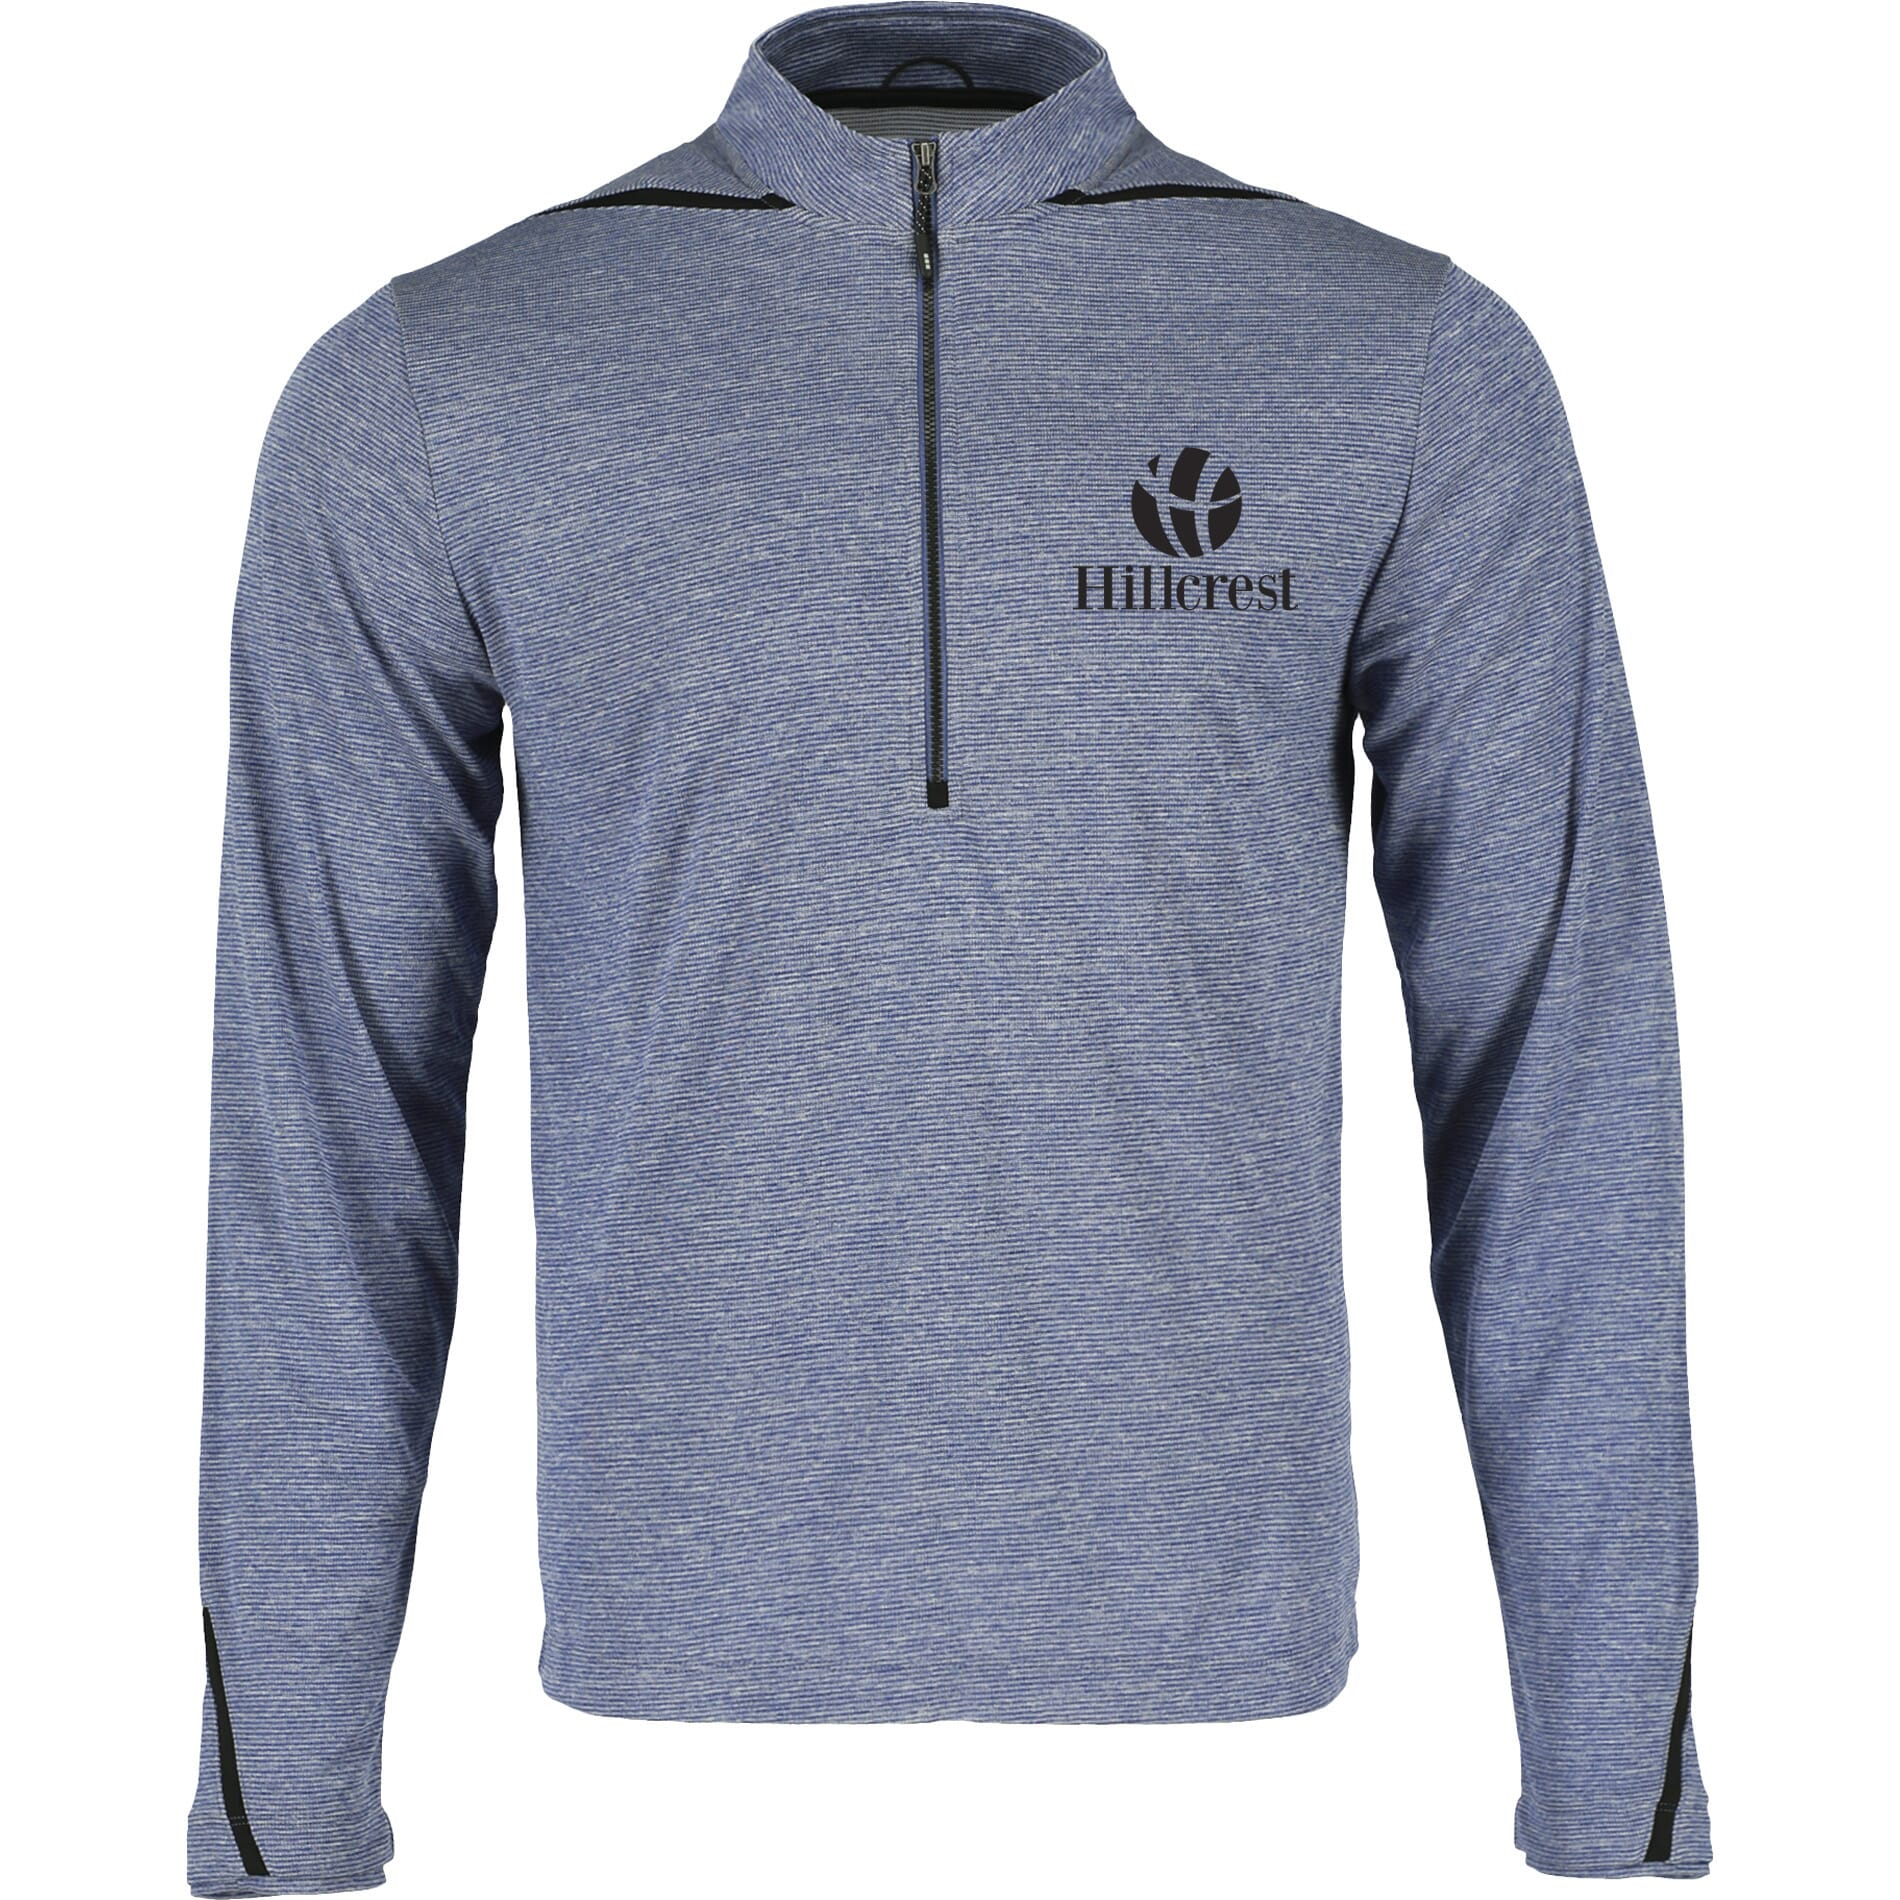 Blue heathered half zip pullover made of recycled polyester